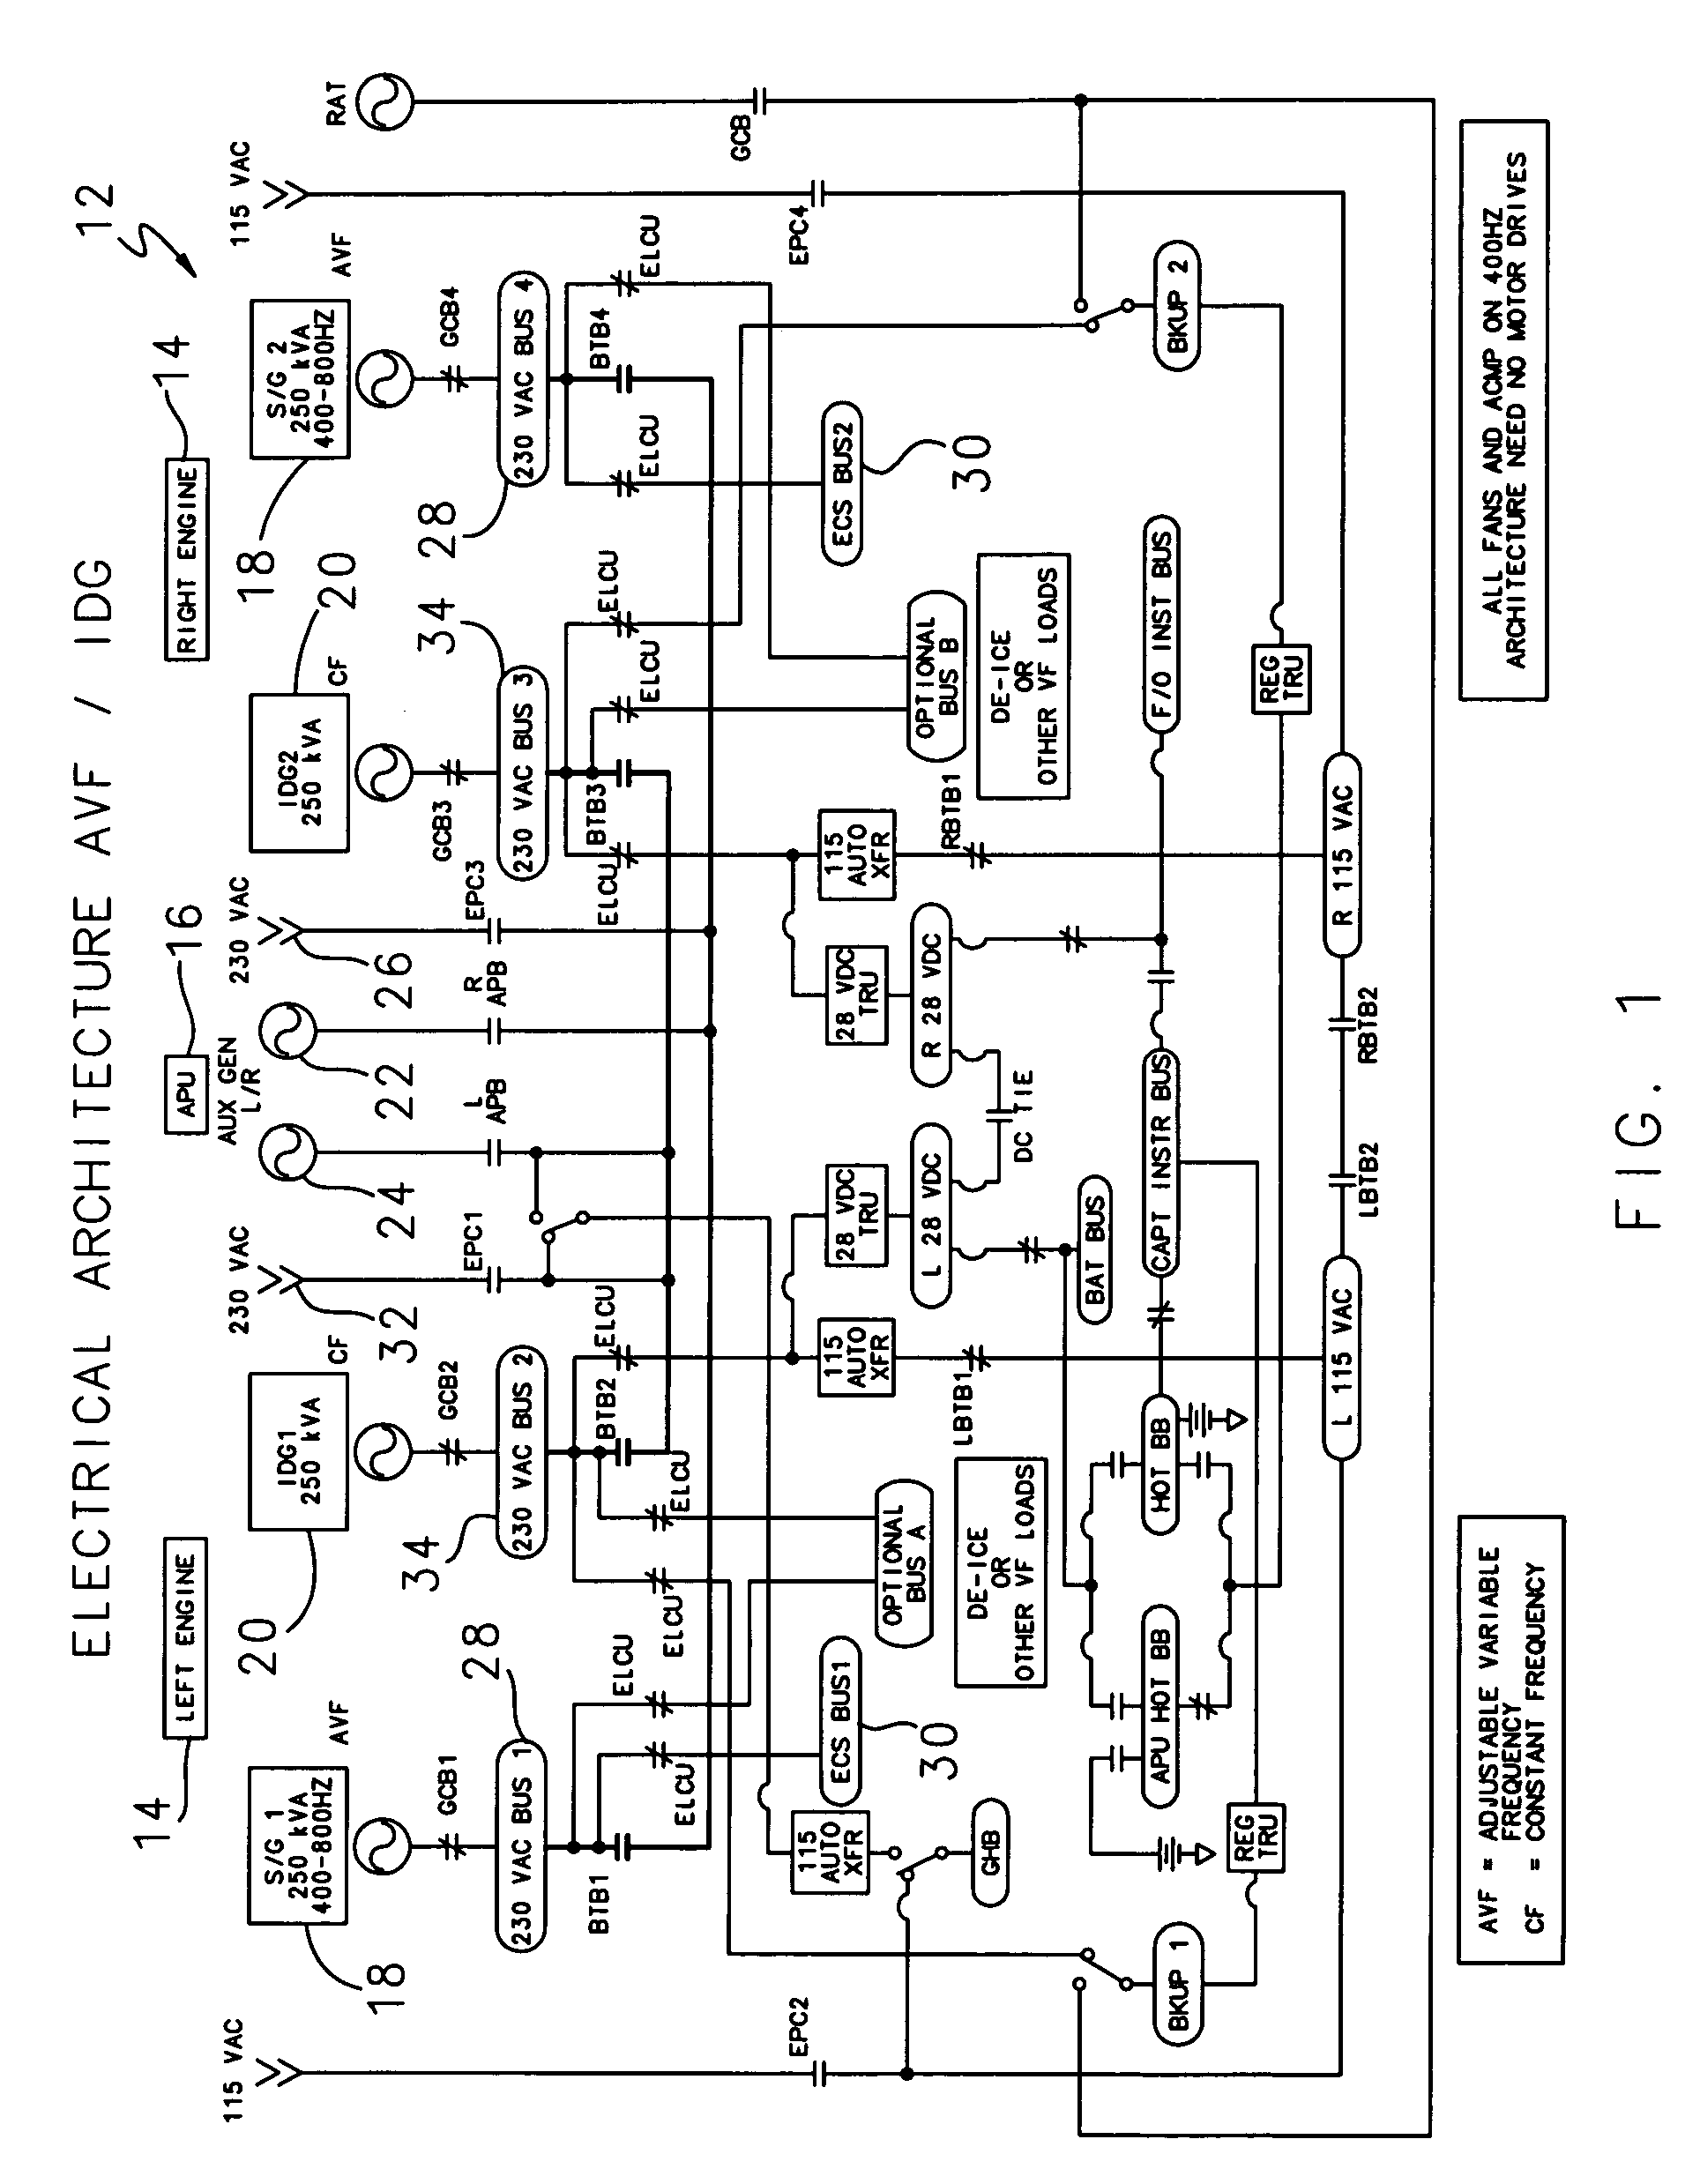 Aircraft generator wiring diagram library of wiring diagram aircraft generator wiring diagram images gallery cheapraybanclubmaster Images